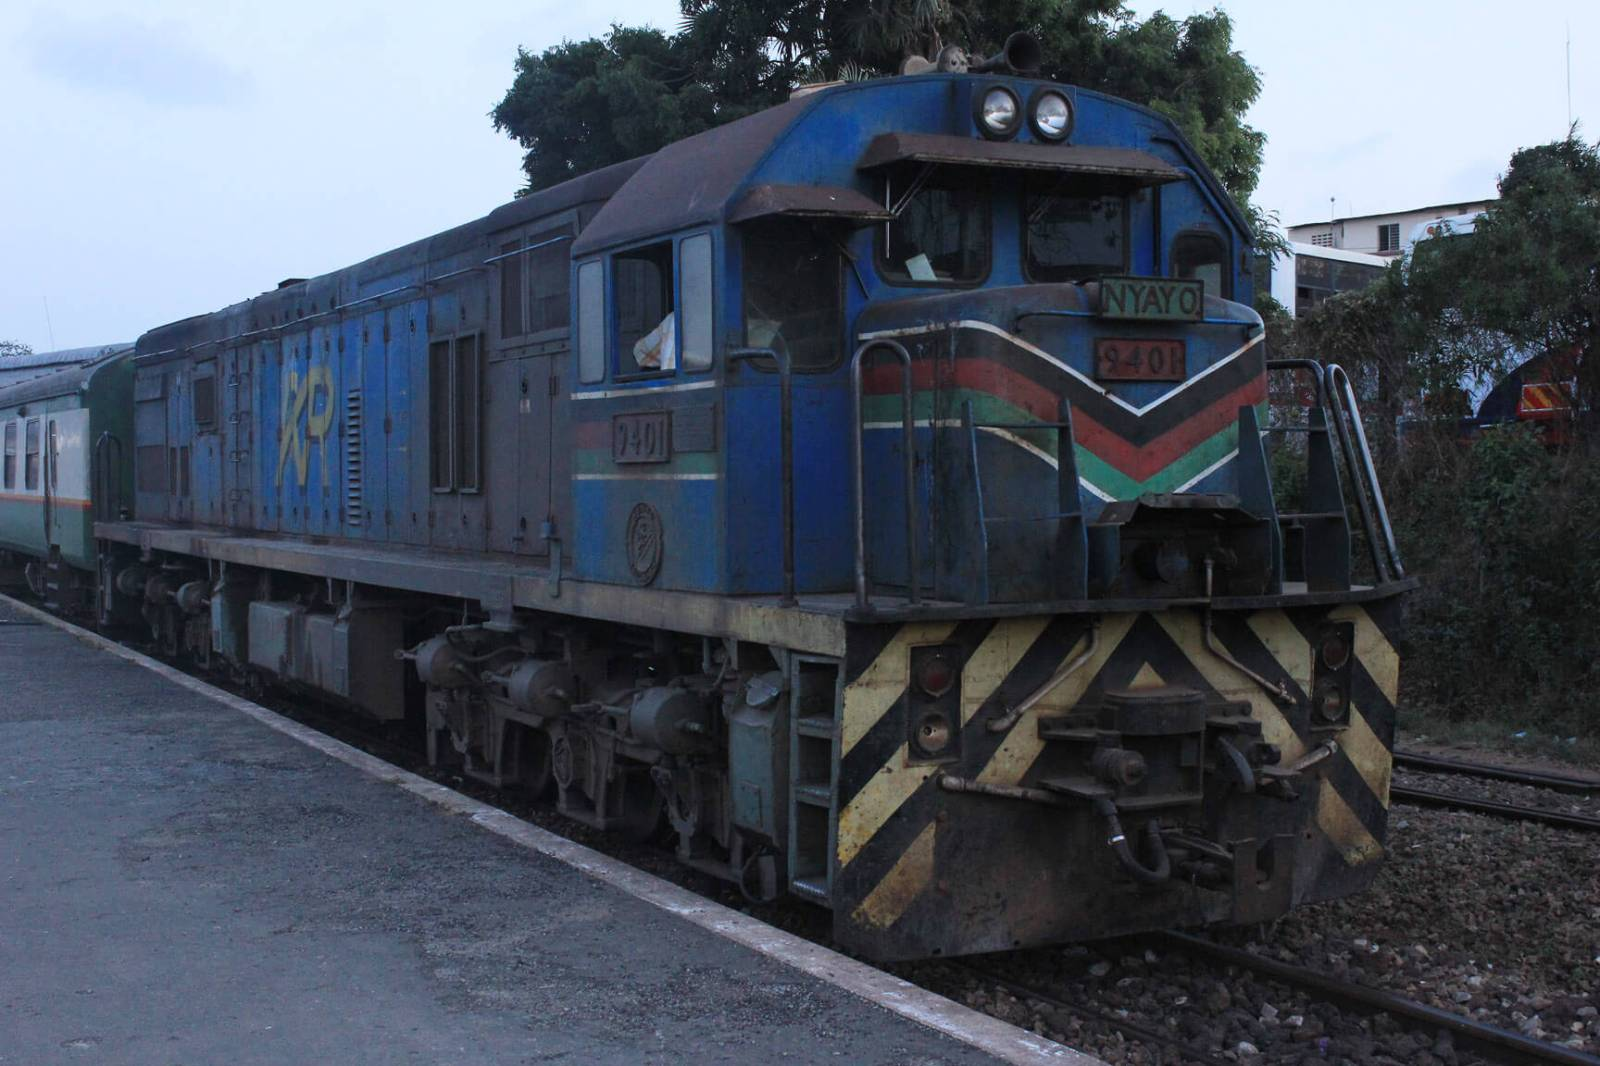 Getting ready to ride The Lunatic Express from Nairobi to Mombasa, Kenya